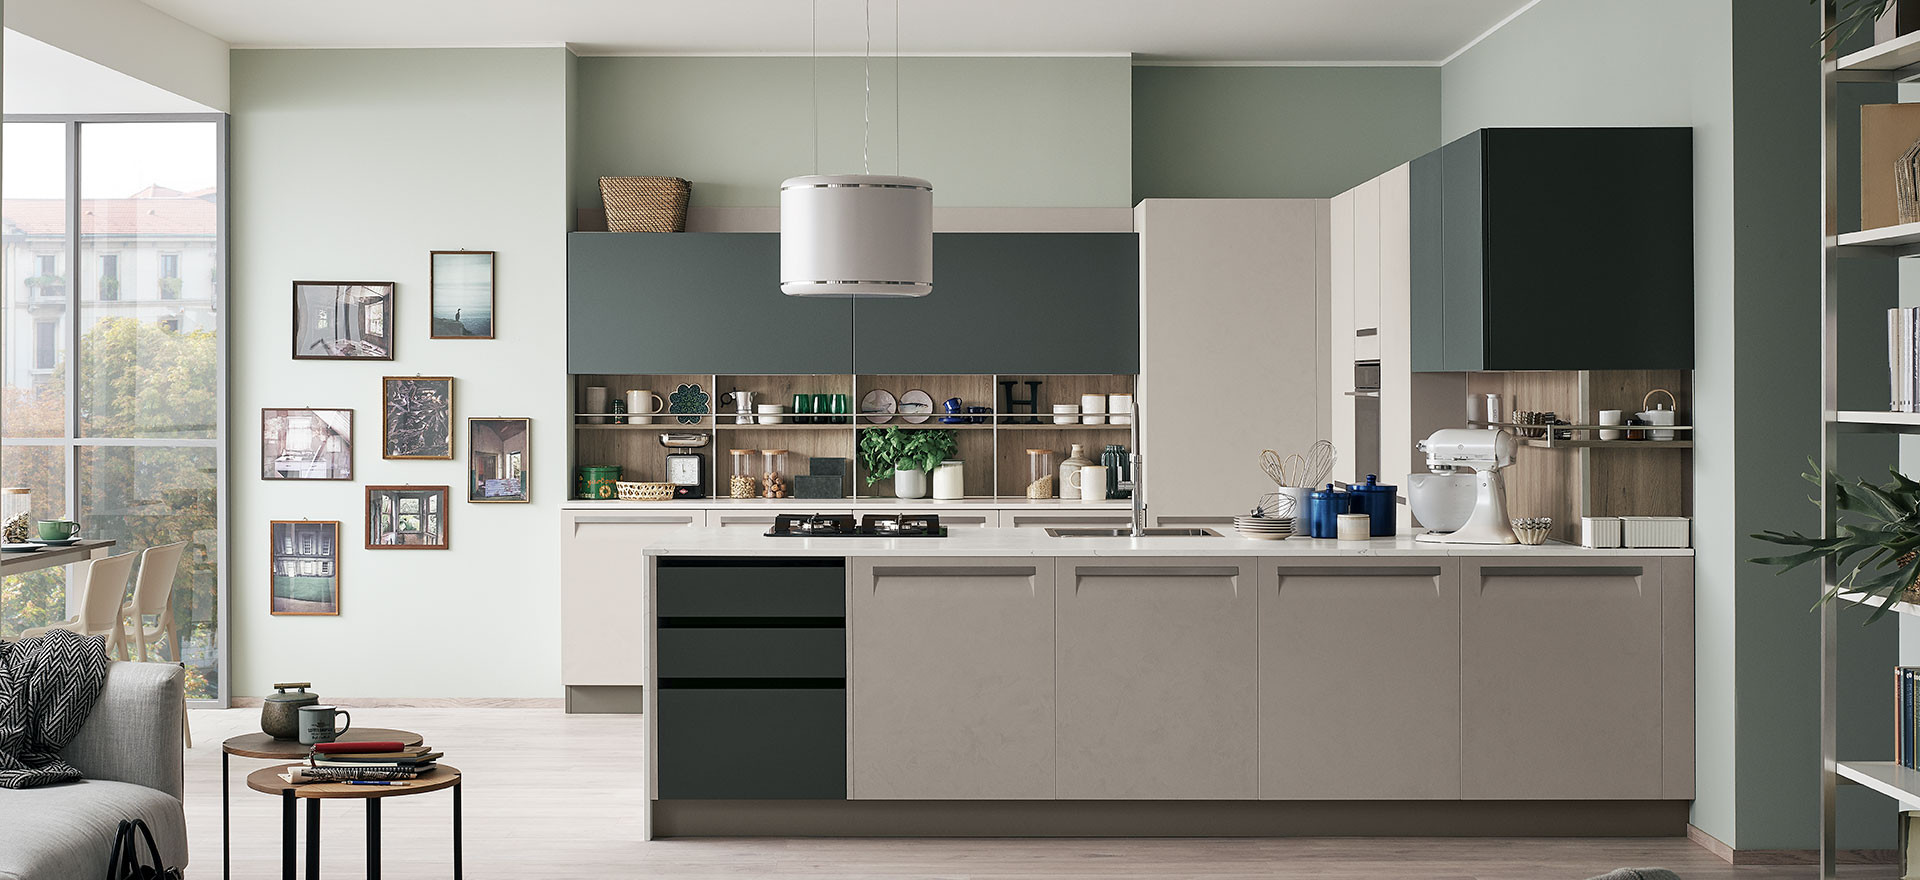 Furniture: kitchens and living rooms | Veneta Cucine